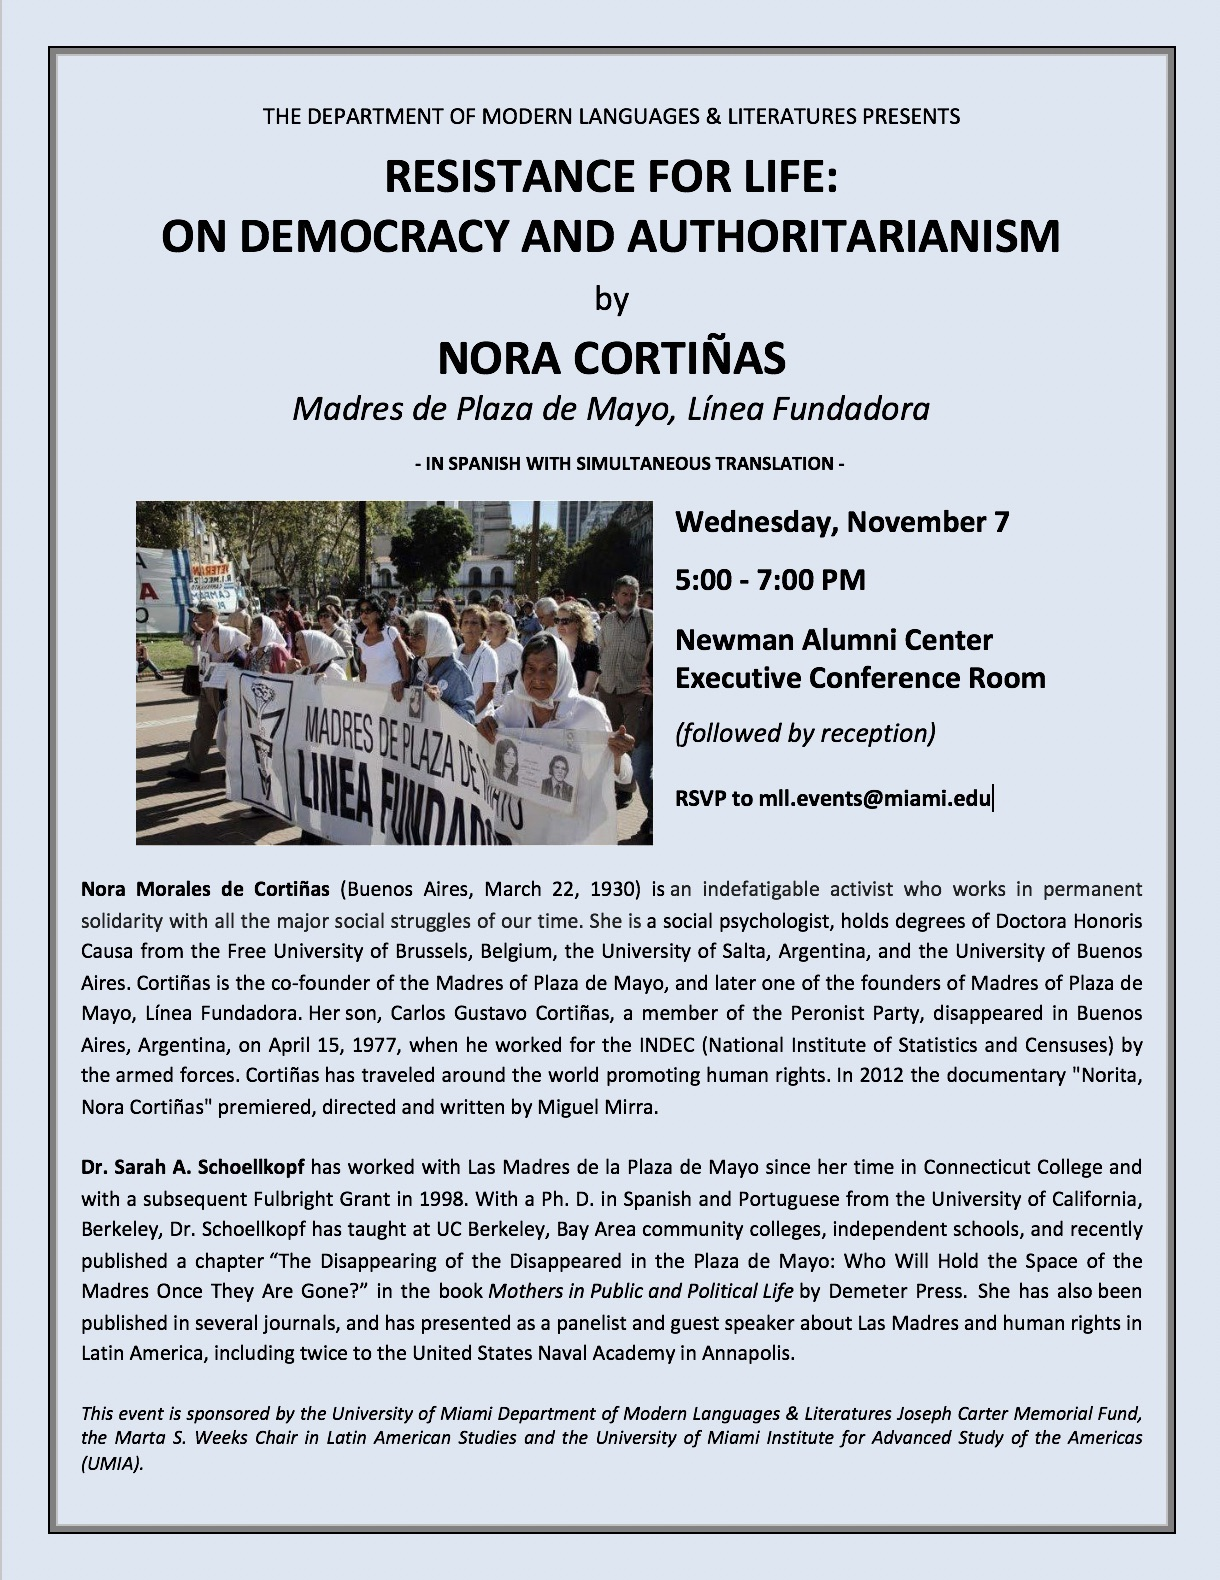 Resistance for Life: On Democracy and Authoritarianism by Nora Cortiñas